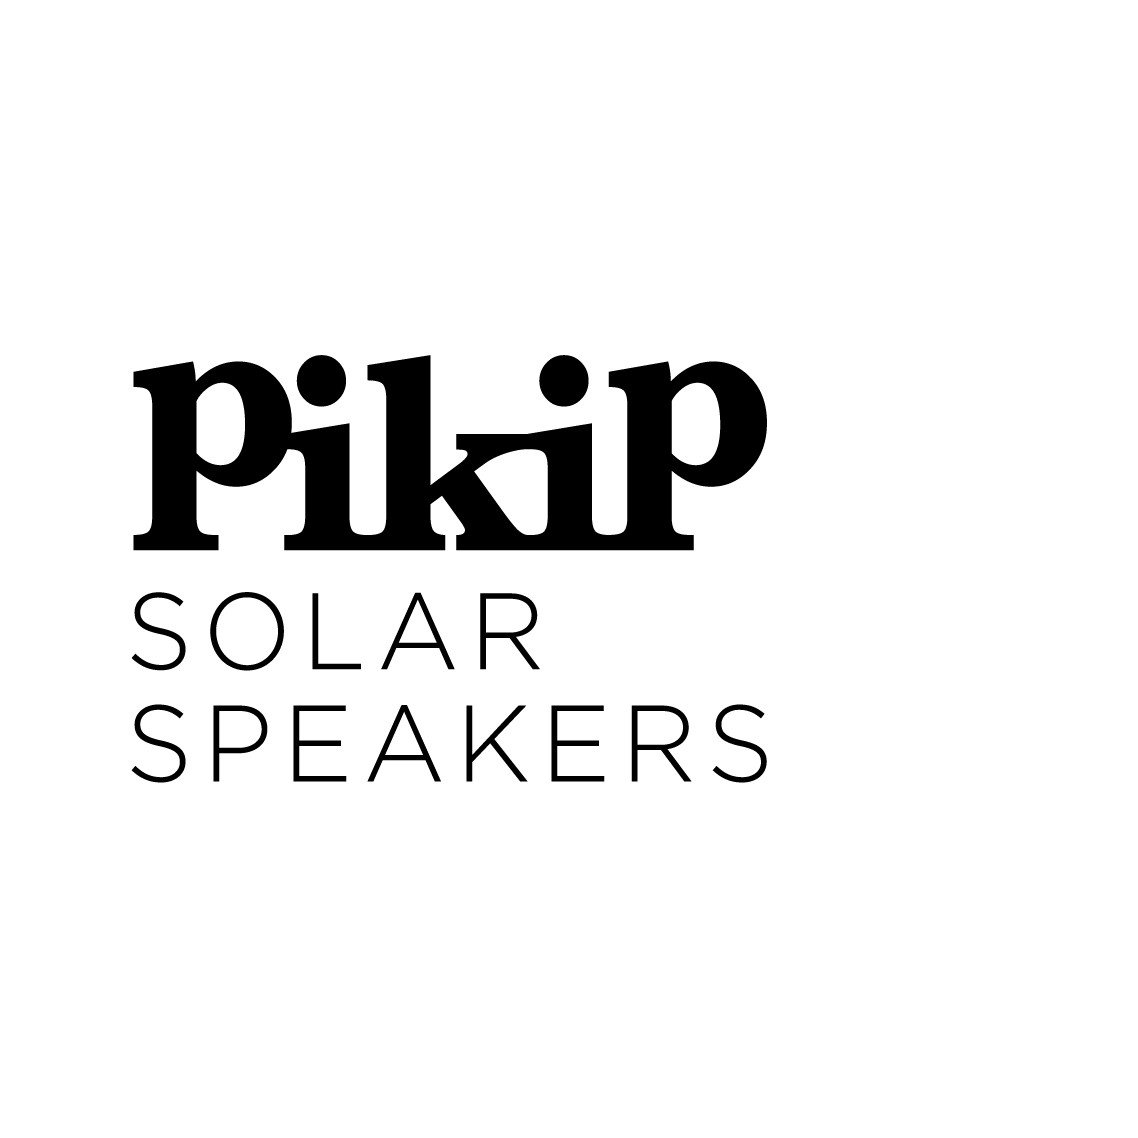 PIKIP SOLAR SPEAKERS